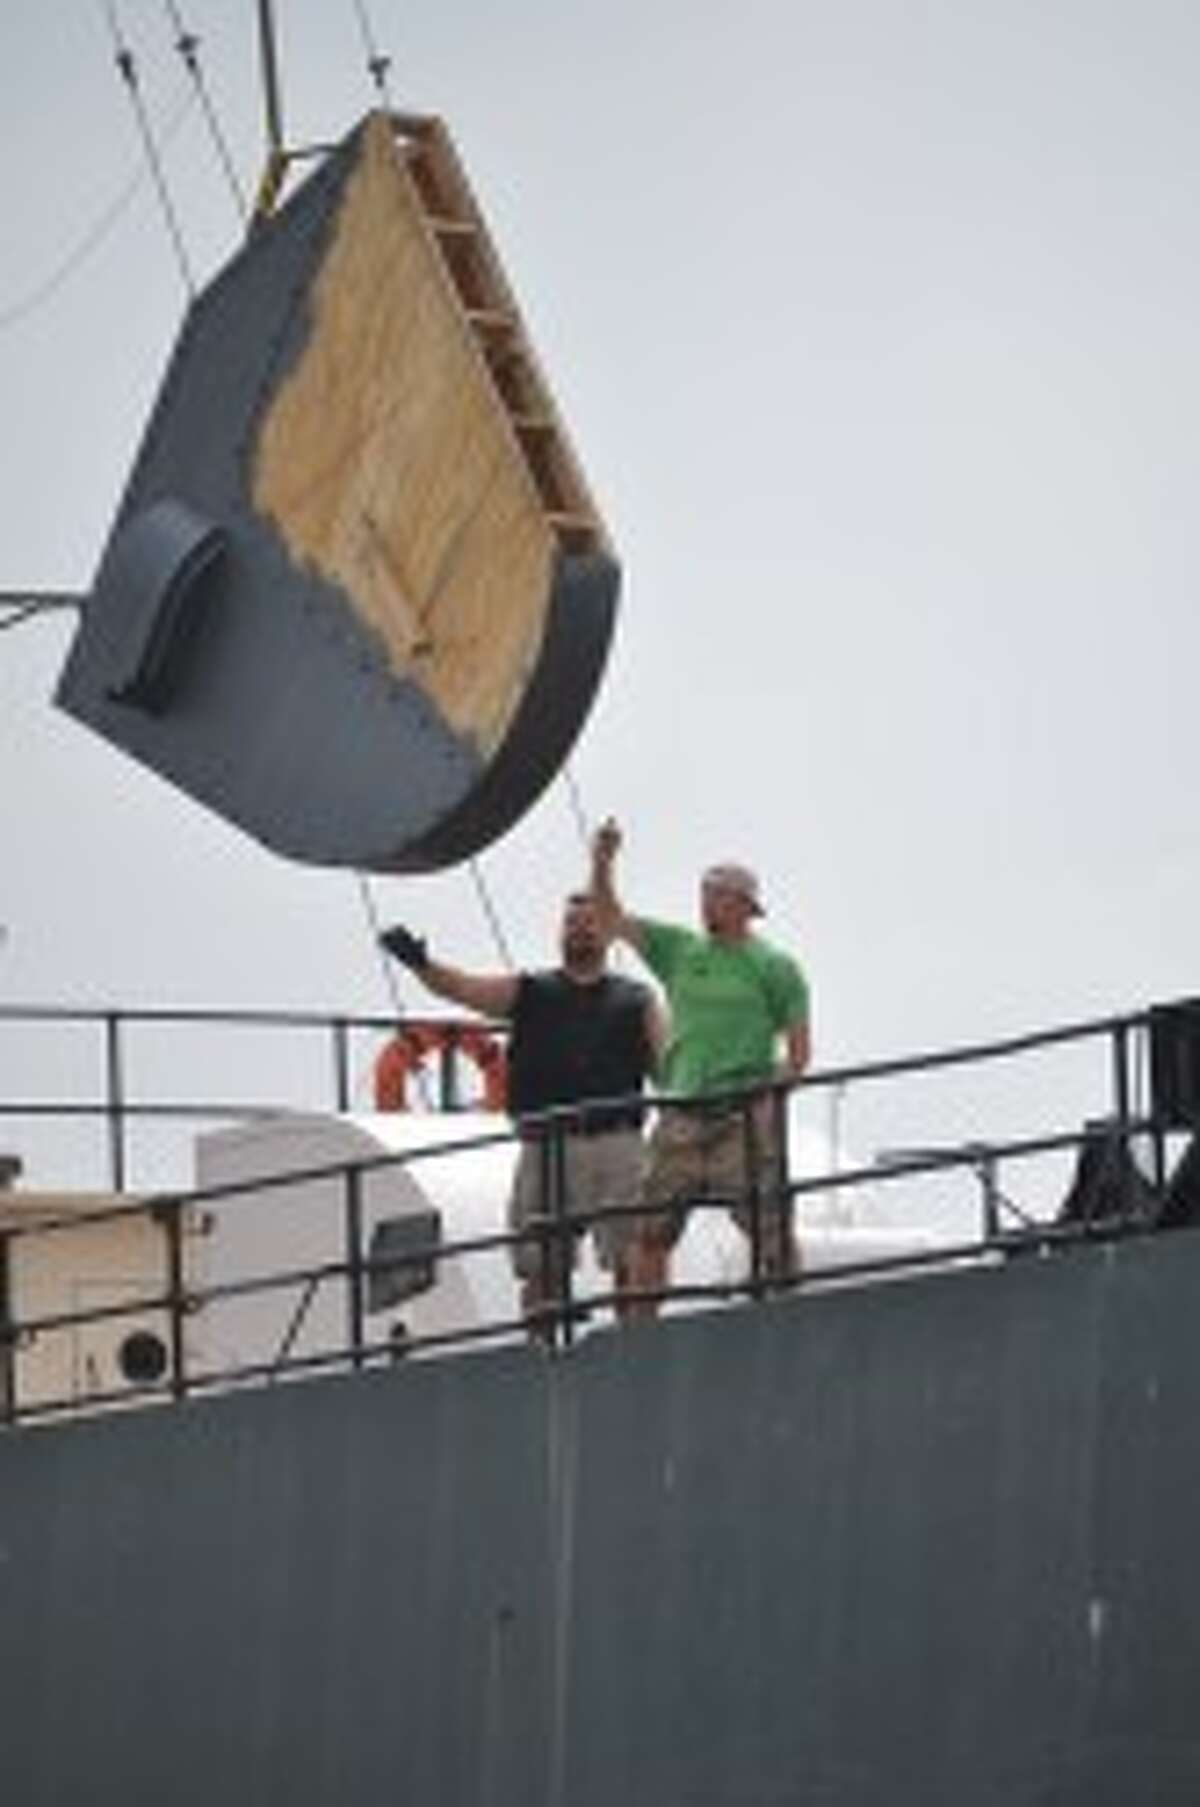 Writer, director and producer Harold Cronk and his crew members set up props for the new Mickey Matson movie on Friday at the S.S. City of Milwaukee in Manistee.